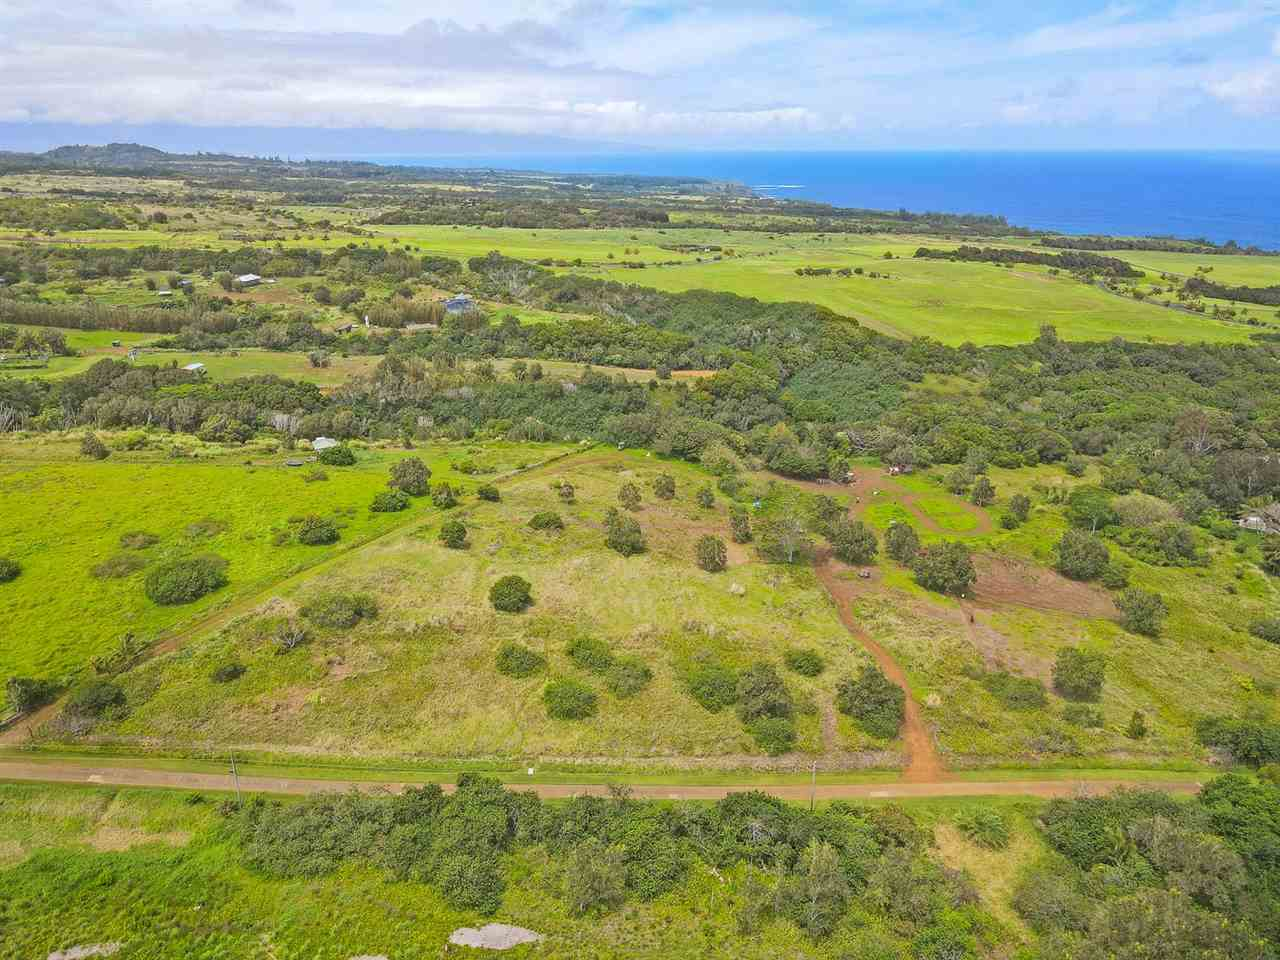 Manawai Pl Lot 3 Haiku, Hi 96708 vacant land - photo 13 of 19